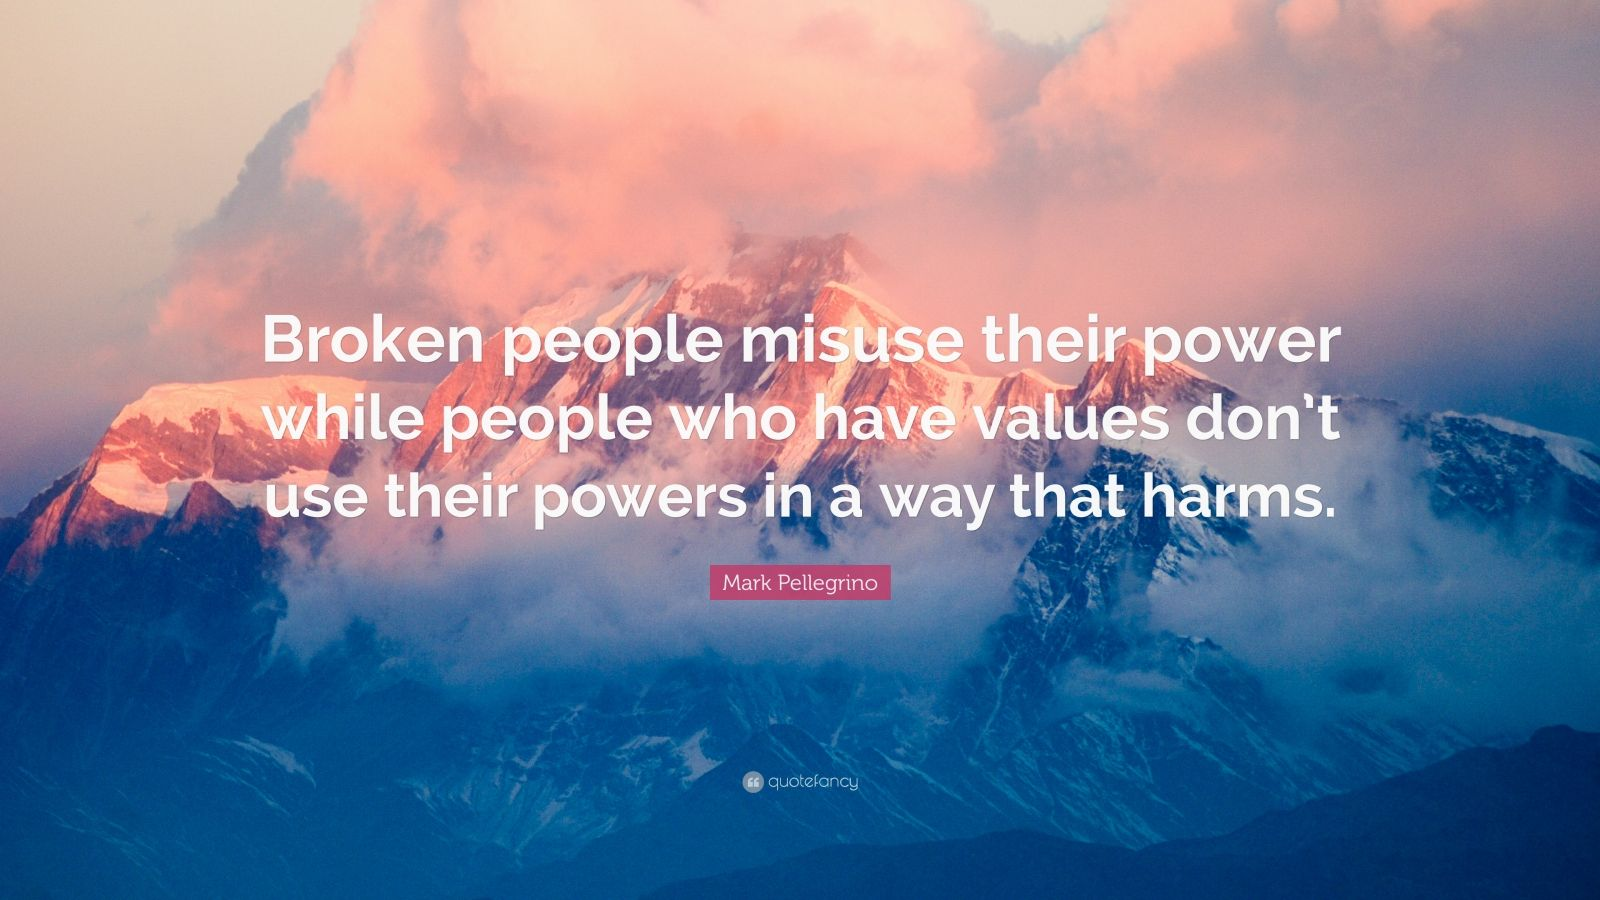 """Mark Pellegrino Quote: """"Broken people misuse their power while people who have values don't use their powers in a way that harms."""""""